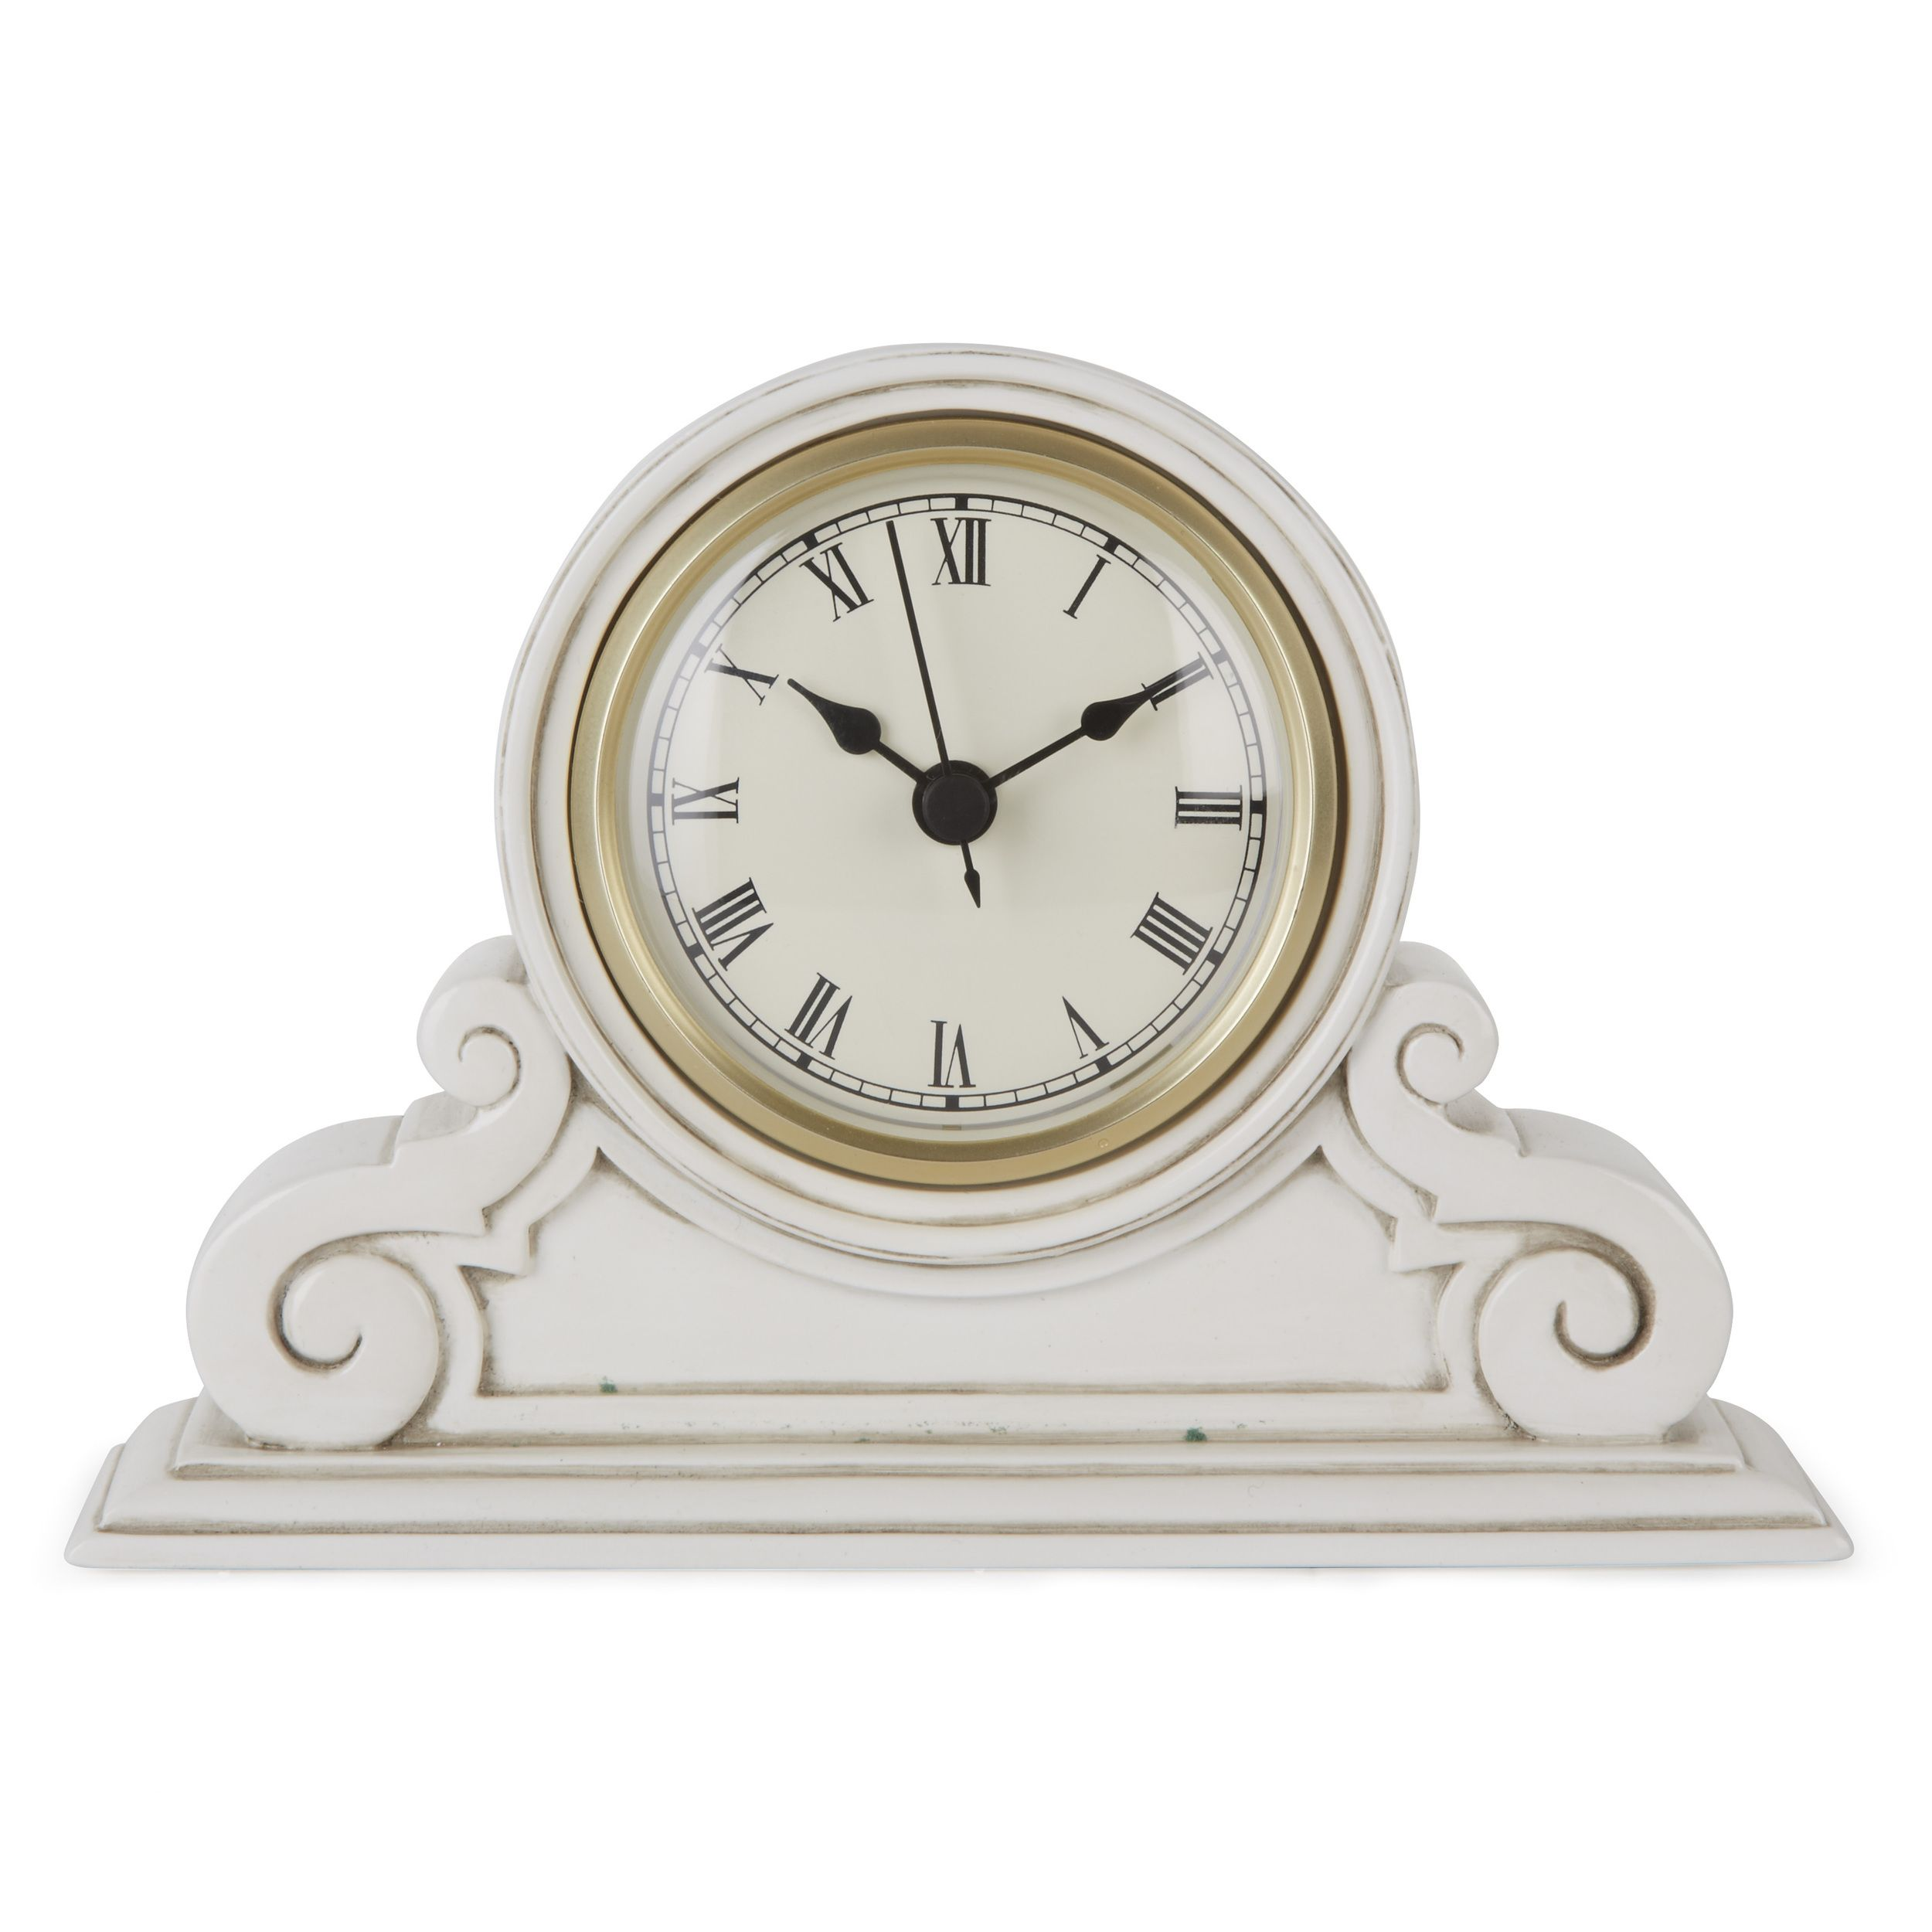 Small Cream Curved Mantle Clock Laura Ashley Home Decor Mantle Clock Clock